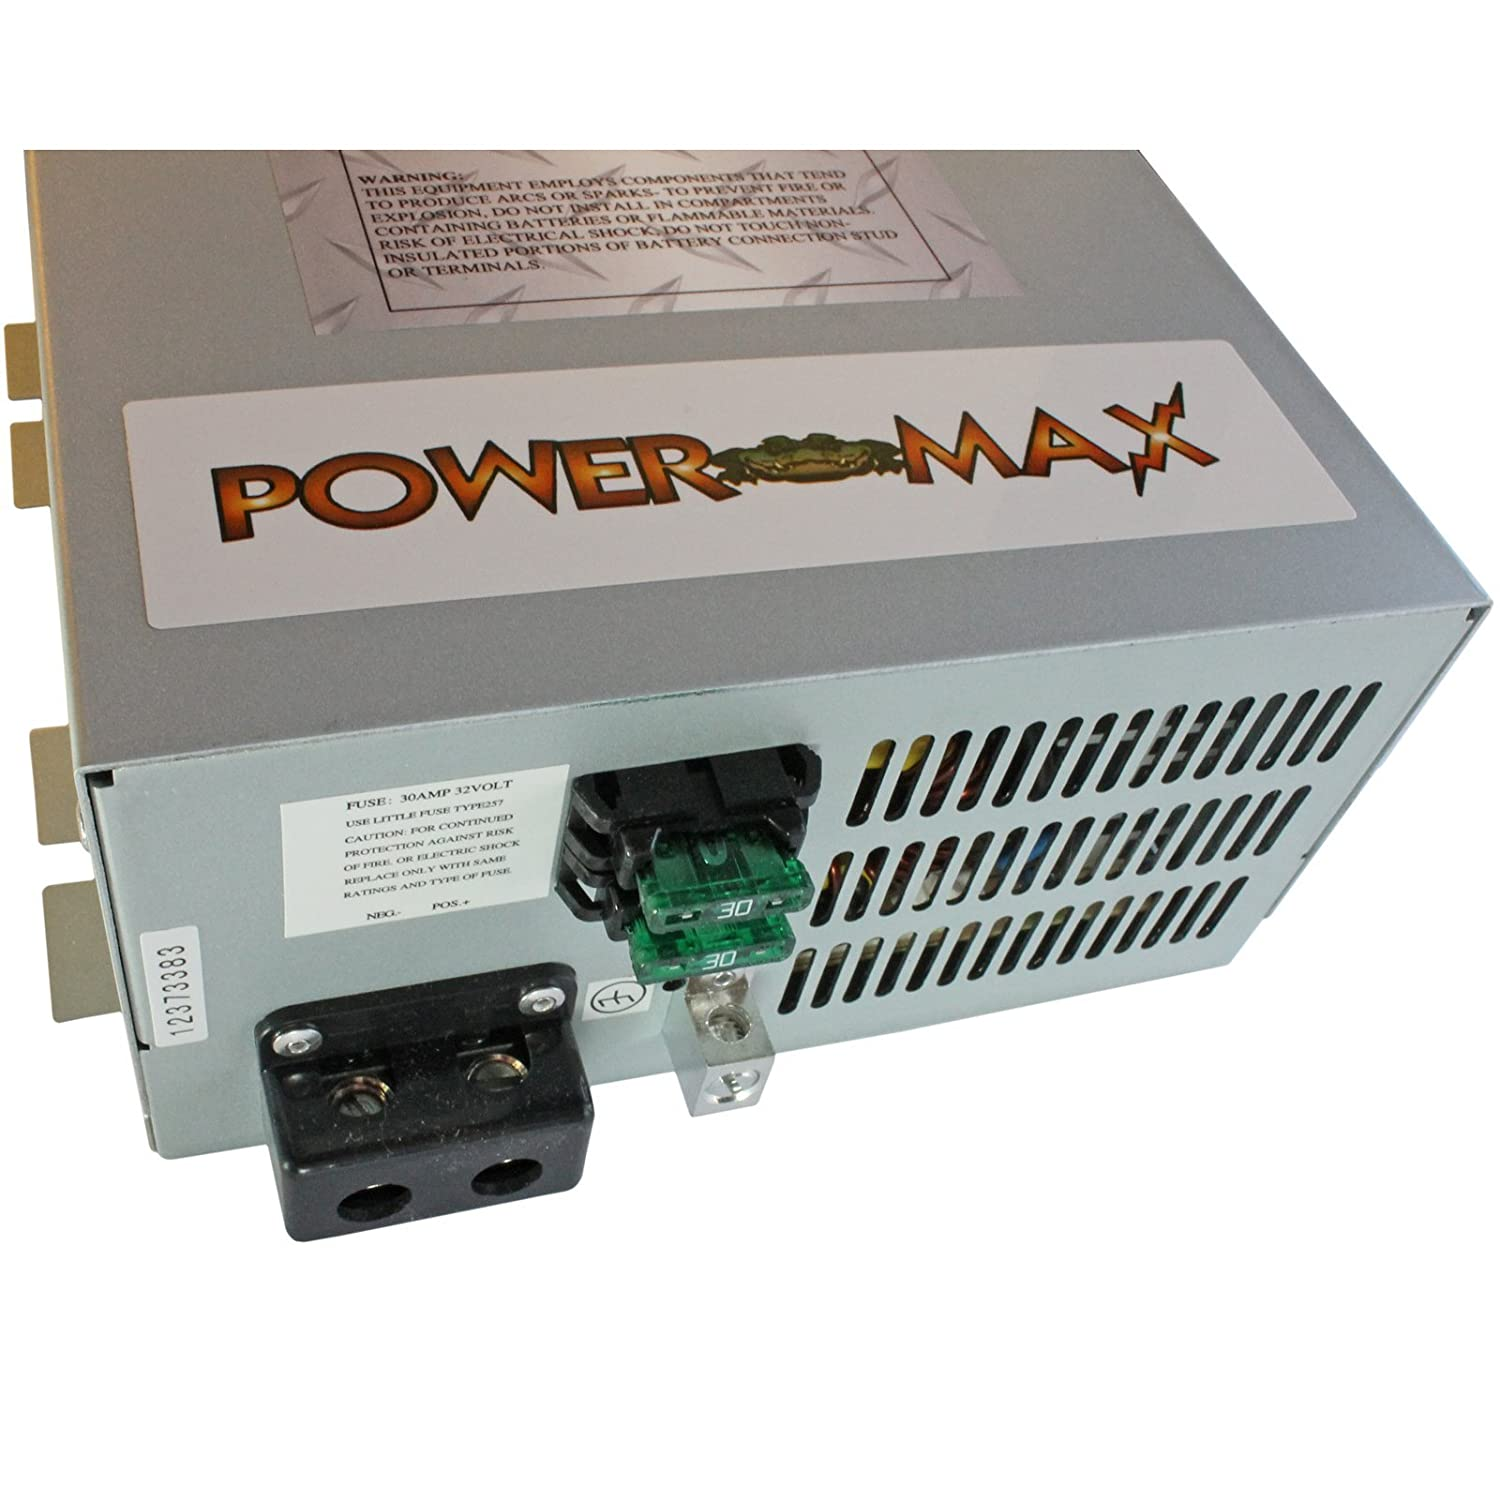 Amazon powermax 110 volt ac to 12 volt dc power supply amazon powermax 110 volt ac to 12 volt dc power supply converter charger for rv pm3 45 45 amp electronics publicscrutiny Images